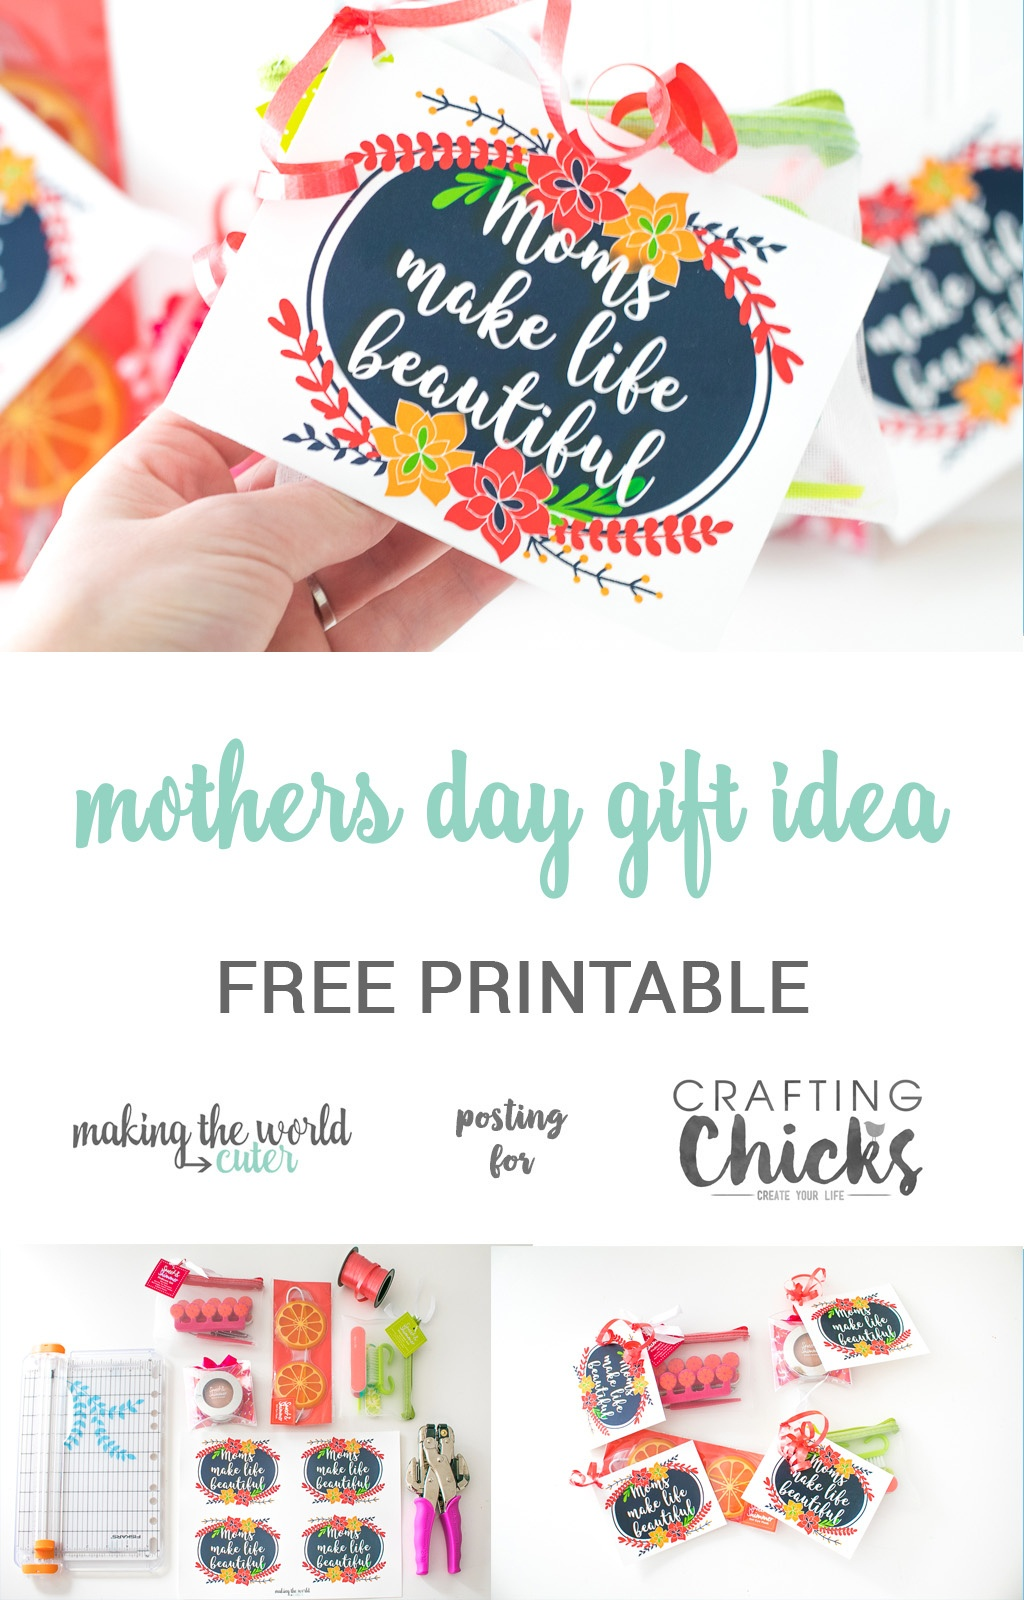 Mothers Day Gift Idea For Friends With Free Printable - Free Printable Mothers Day Gifts